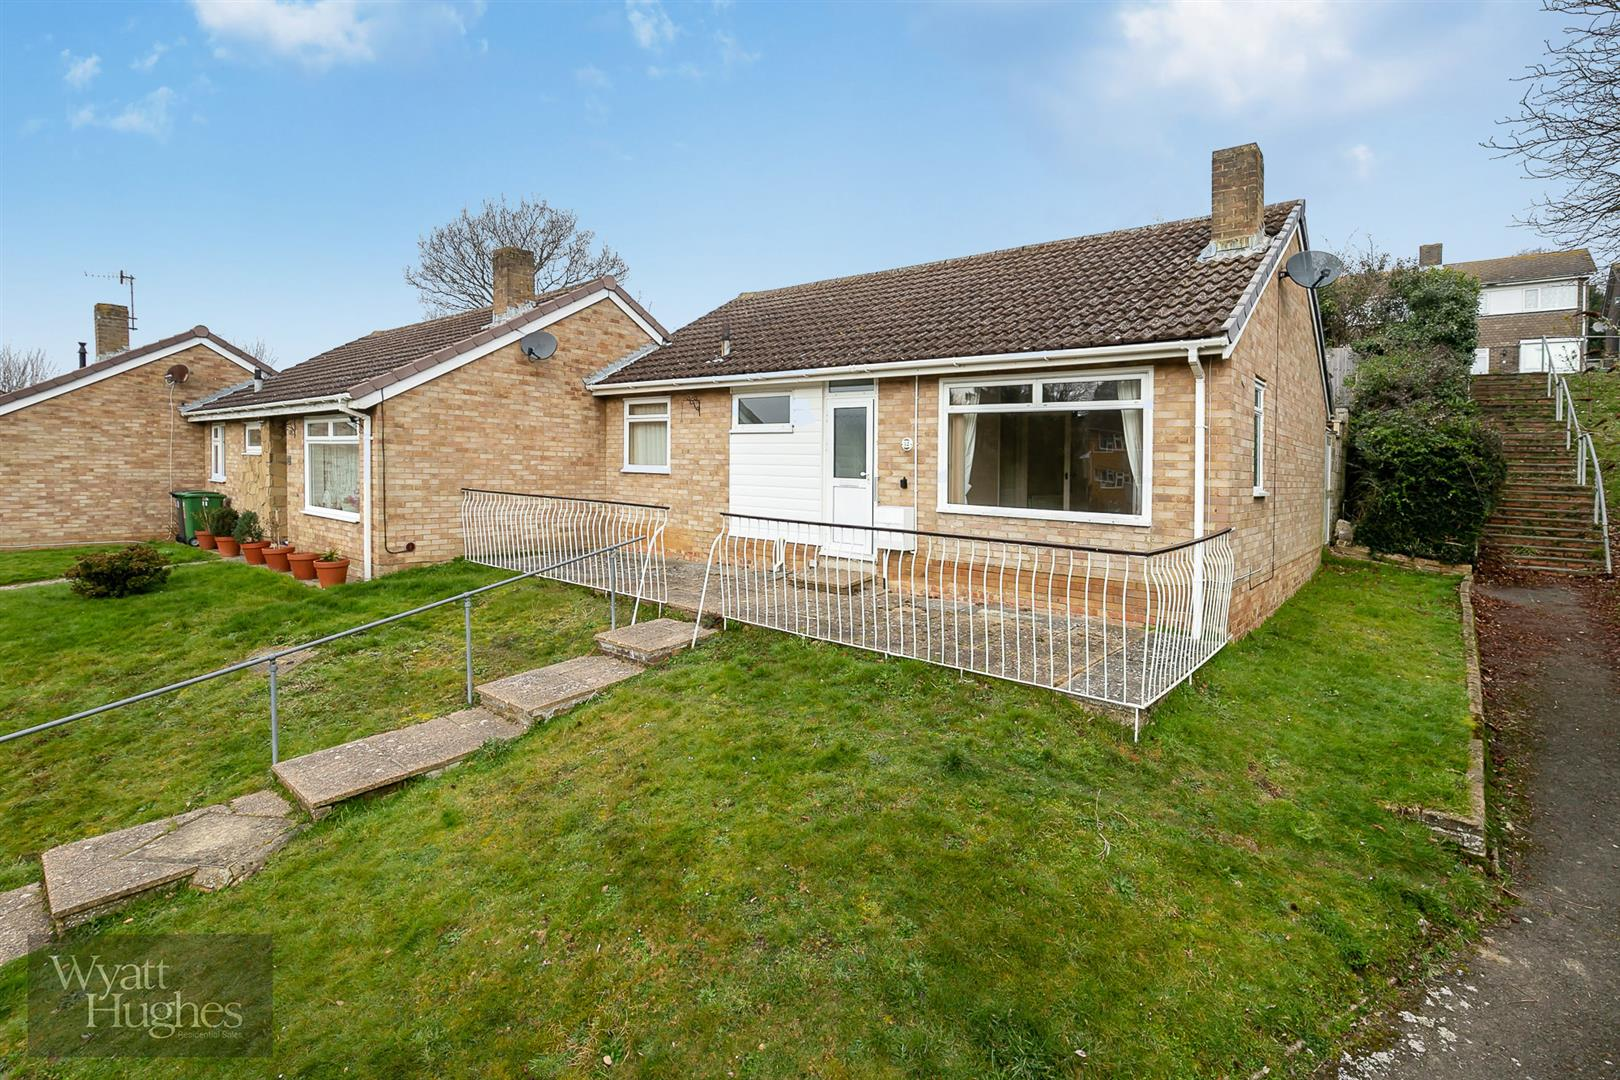 2 bed bungalow for sale in Brading Close, Hastings, TN34